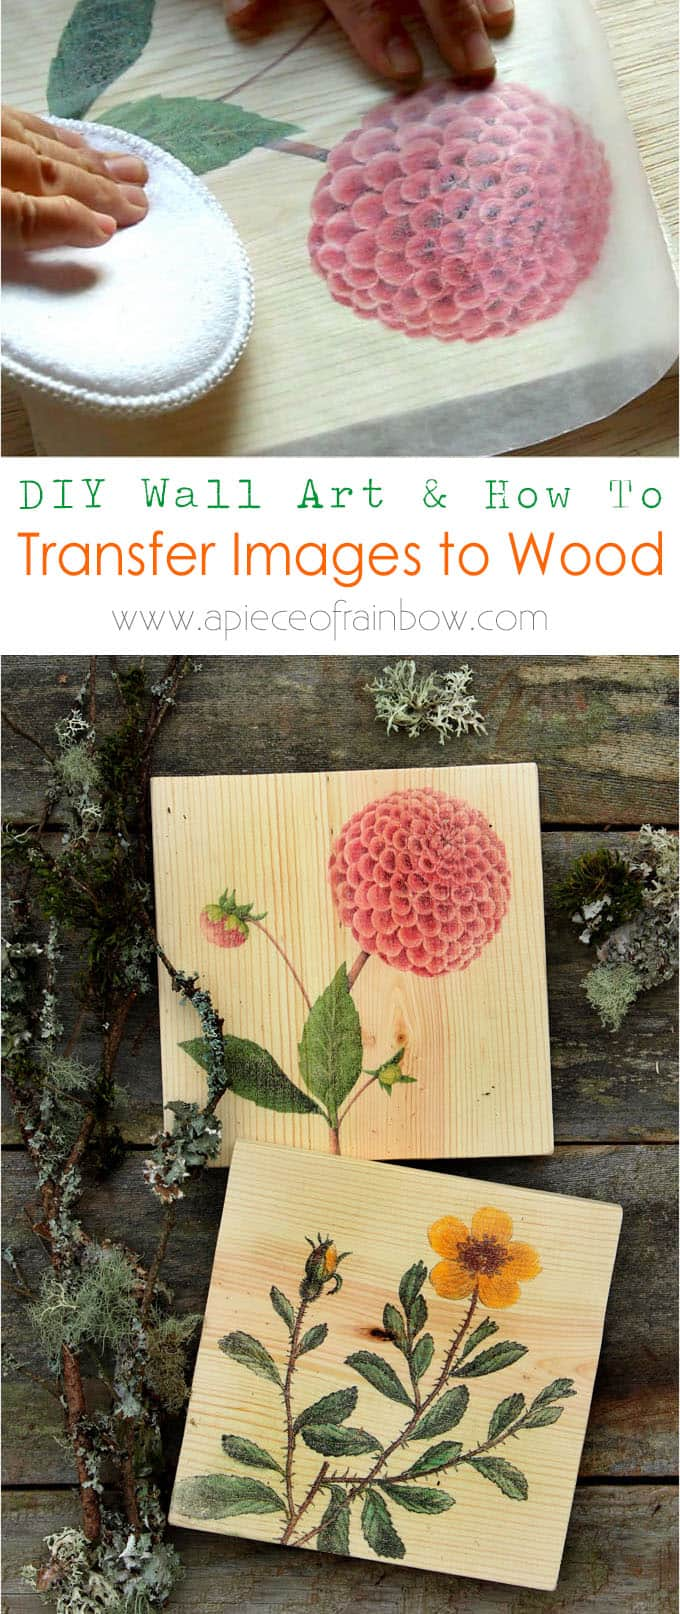 DIY Wall Art & How to Transfer Image to Wood - A Piece Of Rainbow